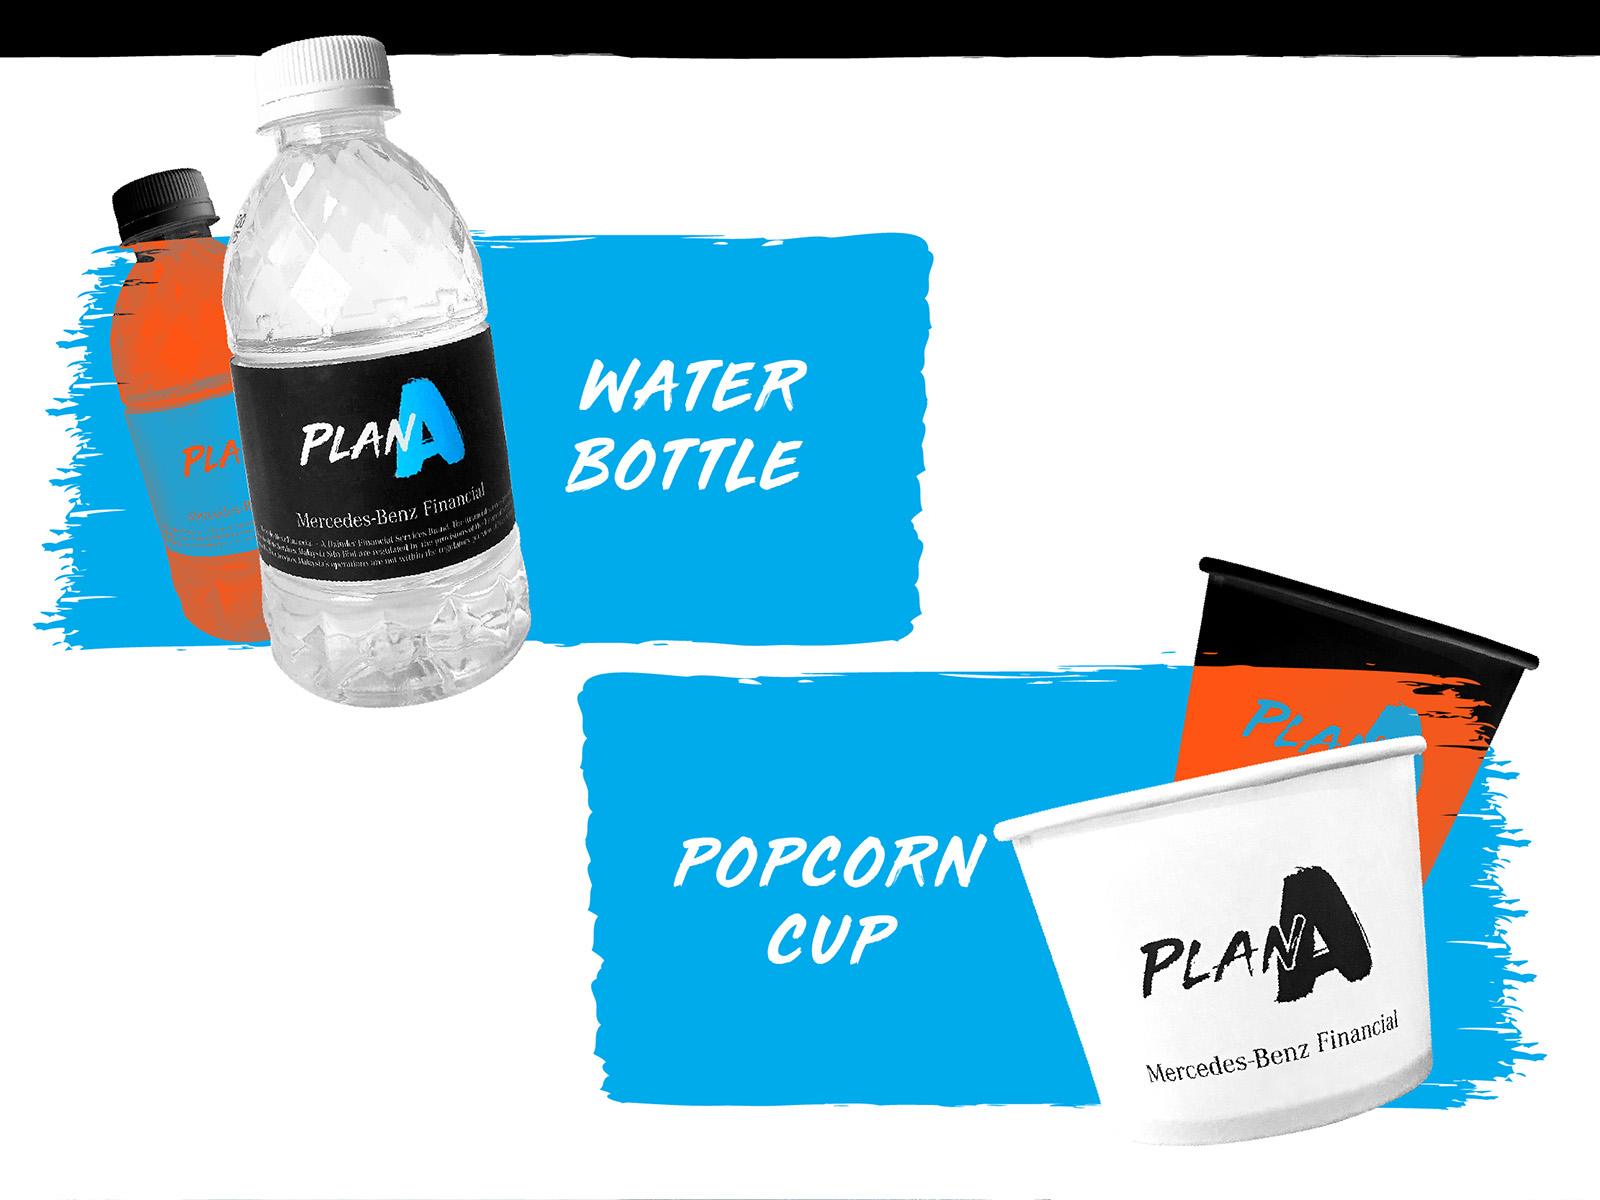 Mercedes-Benz Plan A financing plan masthead design applied onto water bottle and pop corn cup packaging